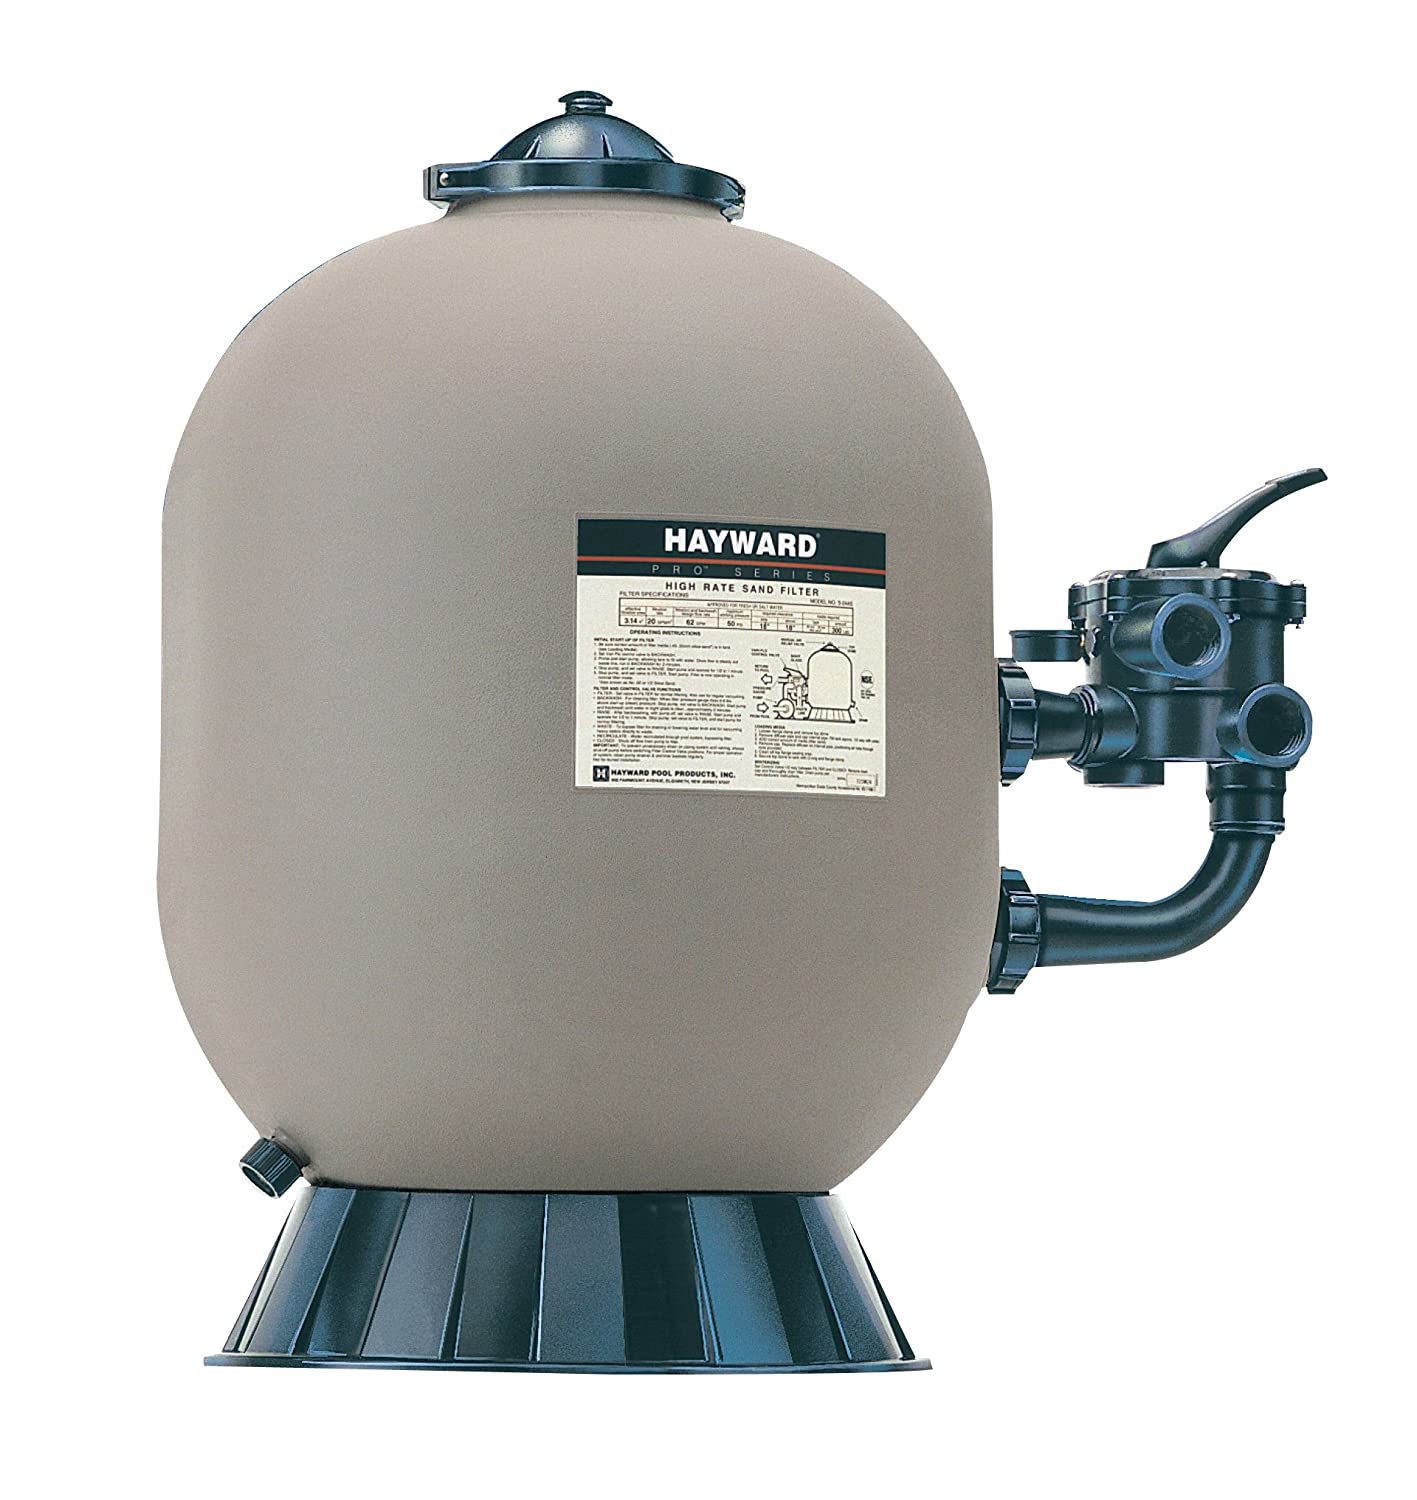 Amazon.com : Hayward S210S ProSeries Sand Filter, 20-Inch, Side-Mount :  Faucet Mount Water Filters : Garden & Outdoor